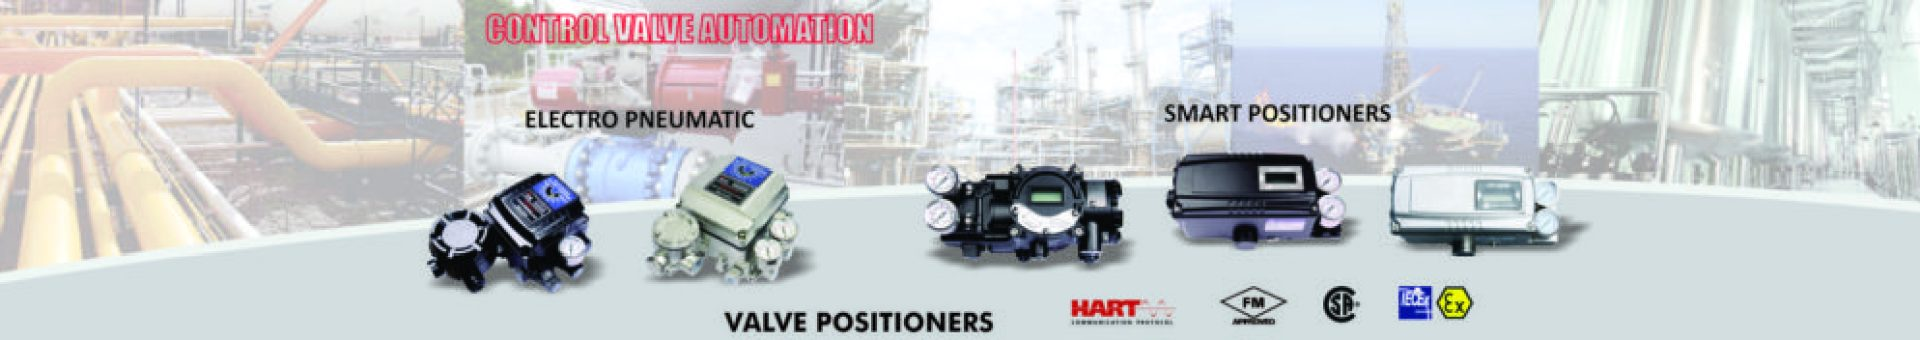 Valve Positioner (YTC), YT-3300 and YT-3400